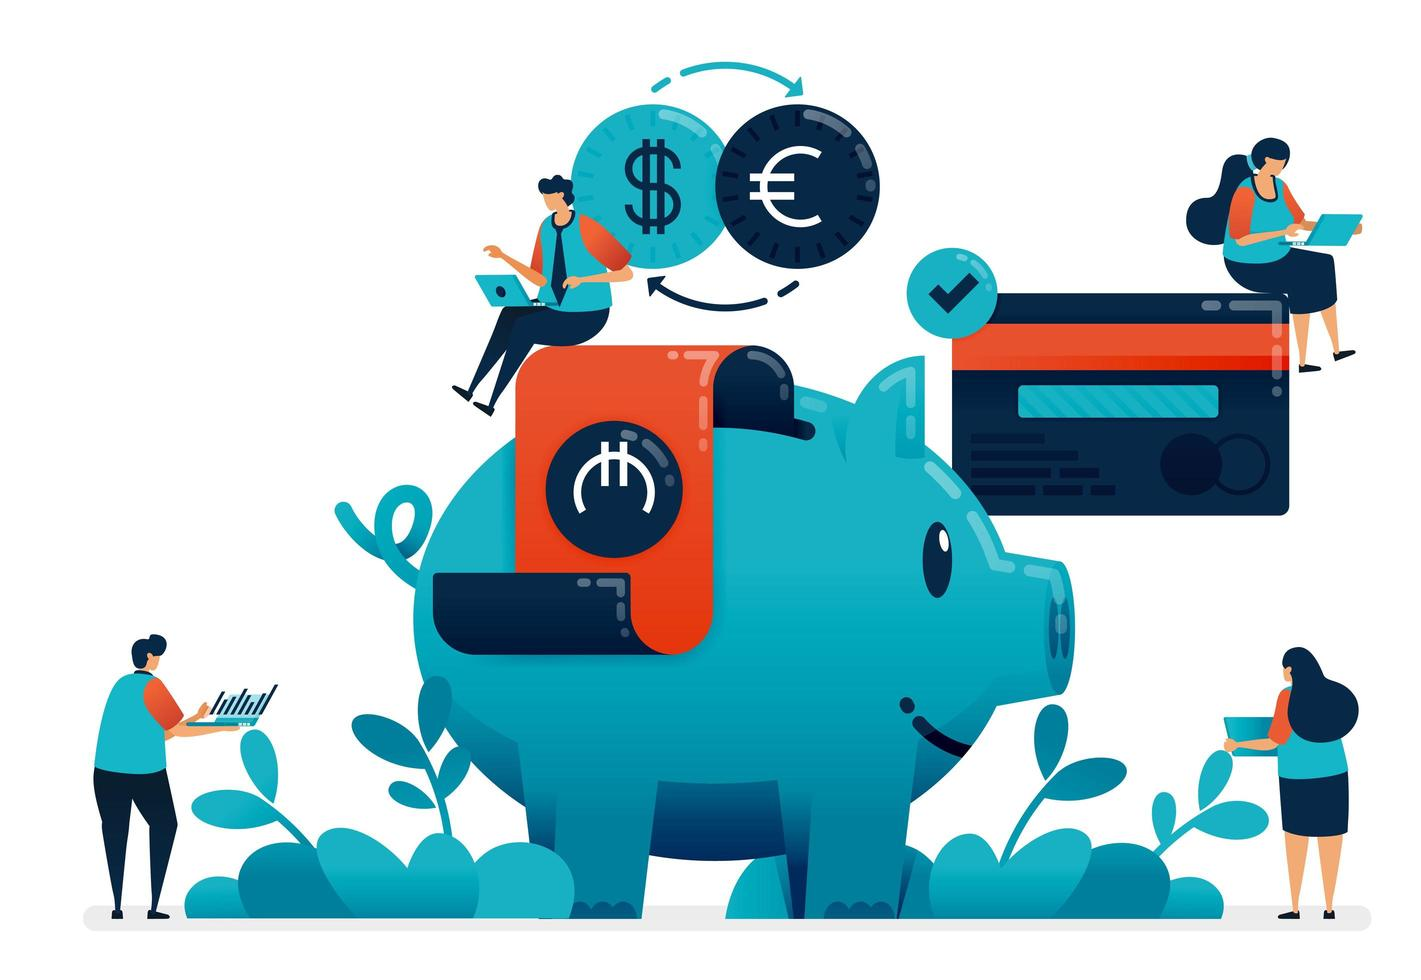 Plan investment for retirement, property, school, investment with banking services. Financial planning consultant, saving and donate with piggy bank, illustration of website, banner, software, poster vector